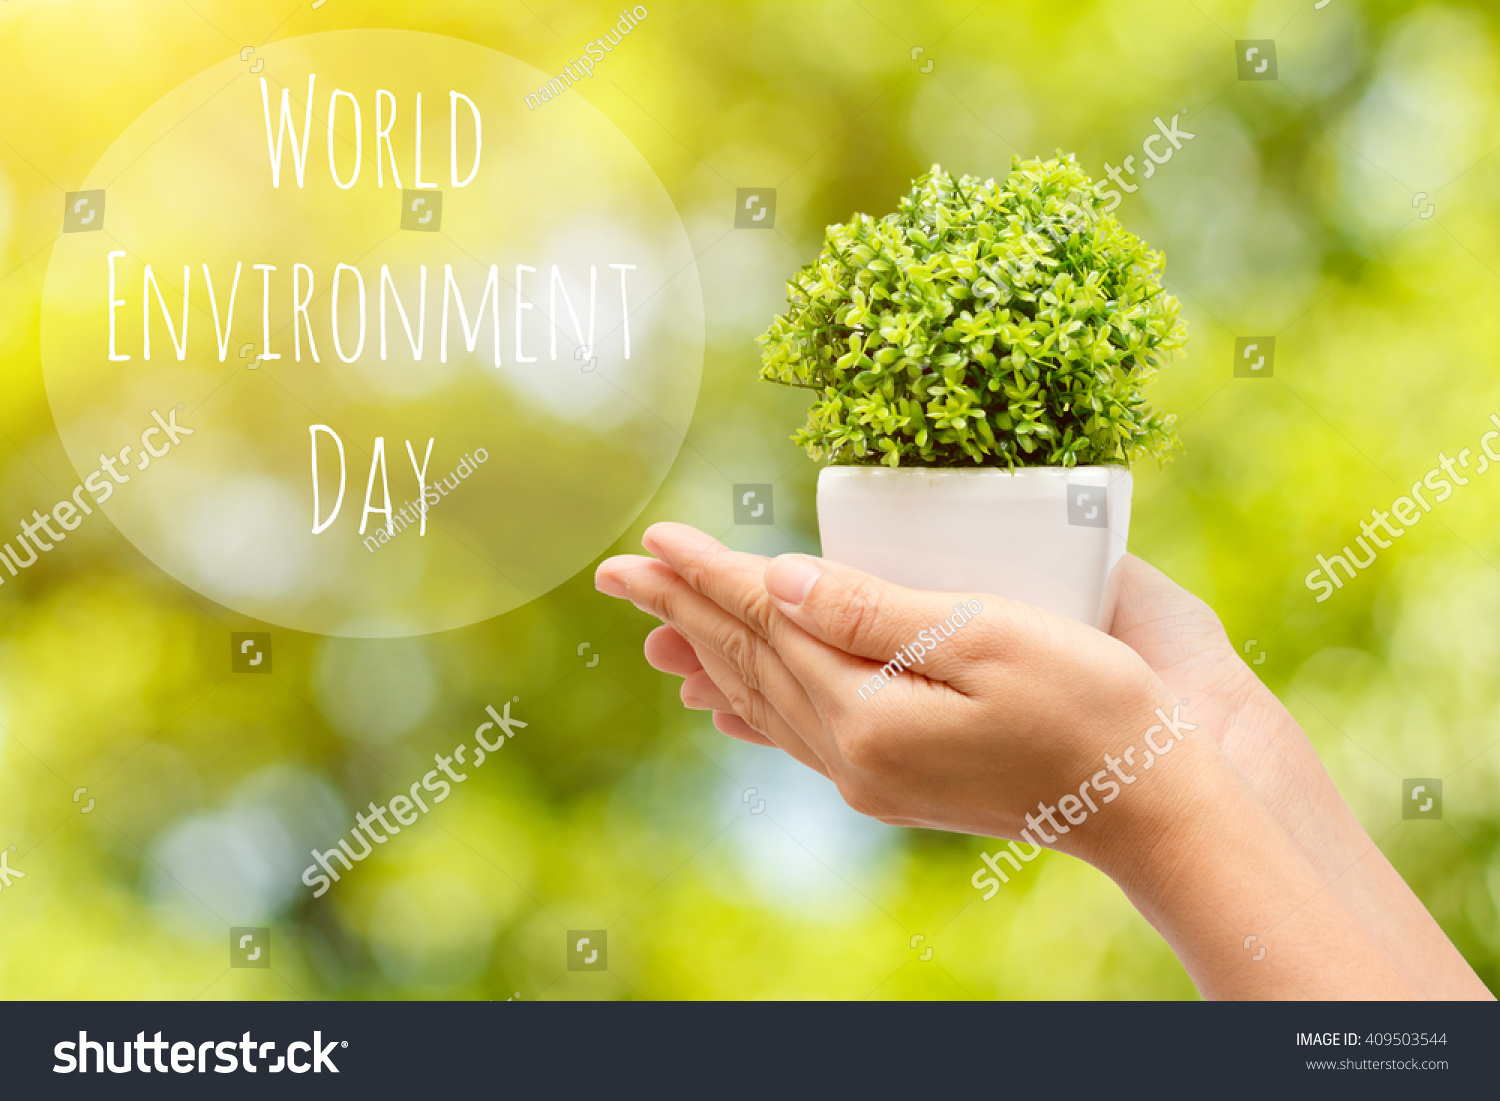 Concept World Environment Day Woman hands in jardiniere on a natural background and text World Environment Day